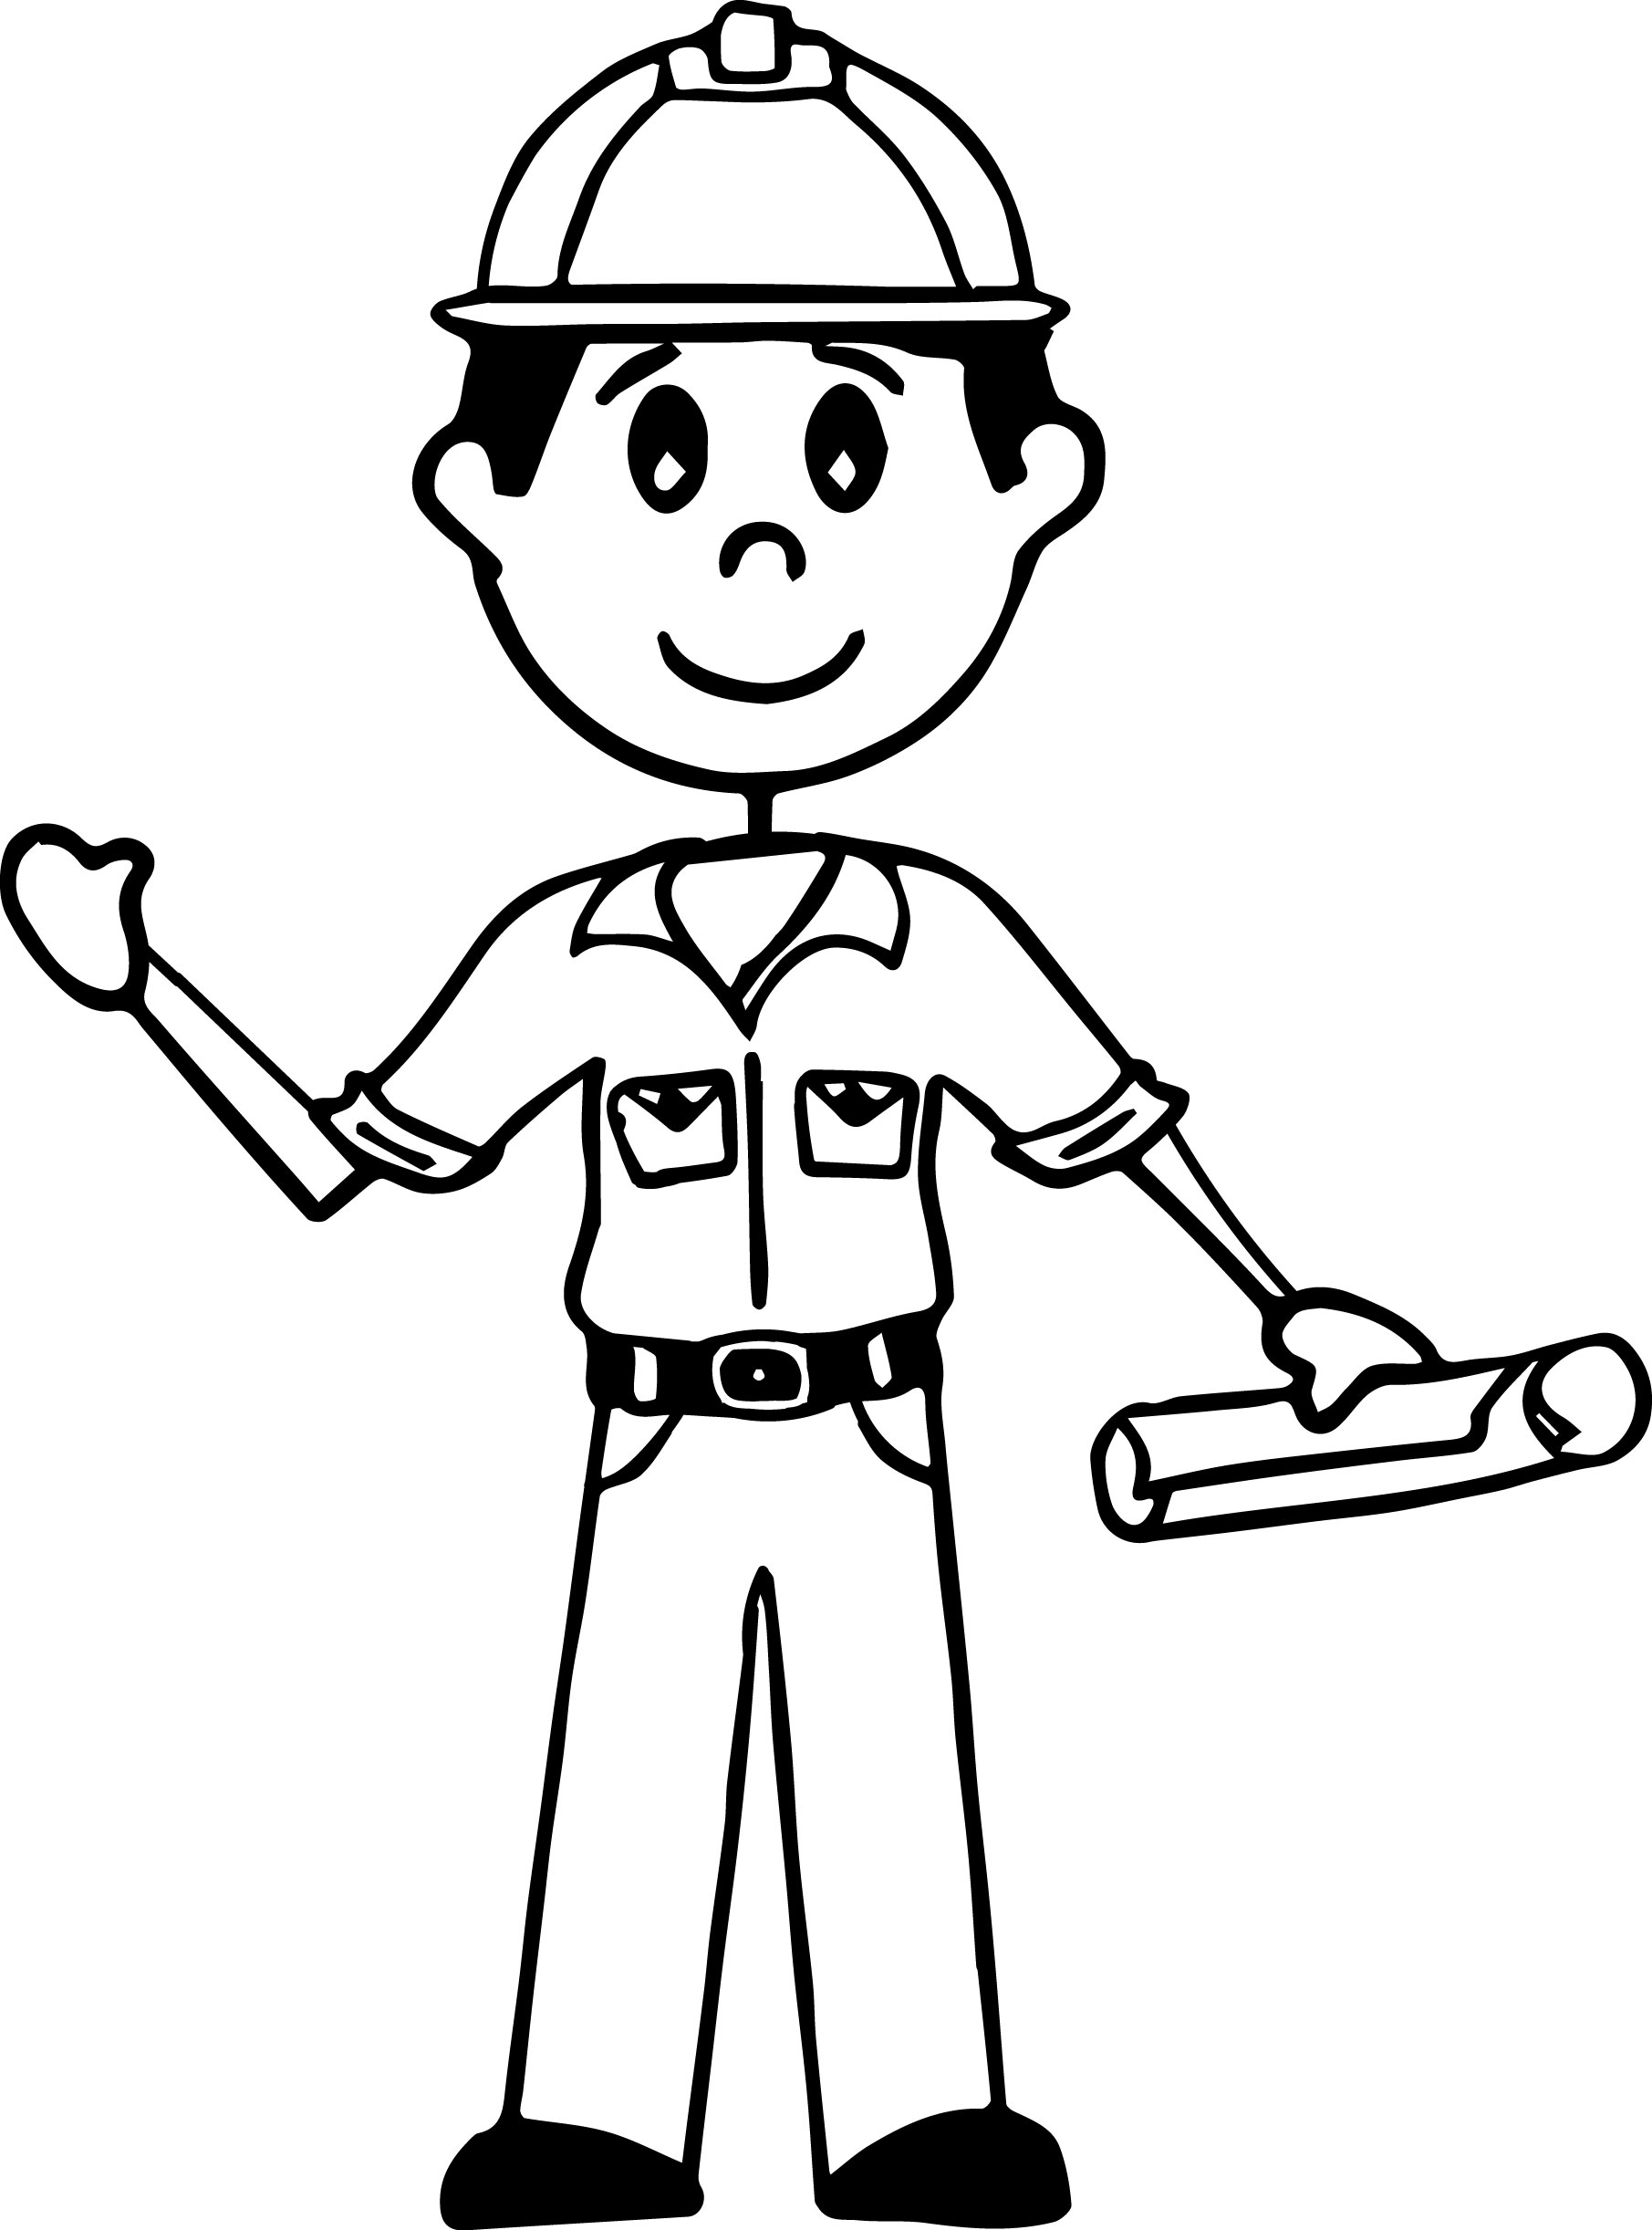 coloring page of a man free online coloring pages thecolor a of page coloring man